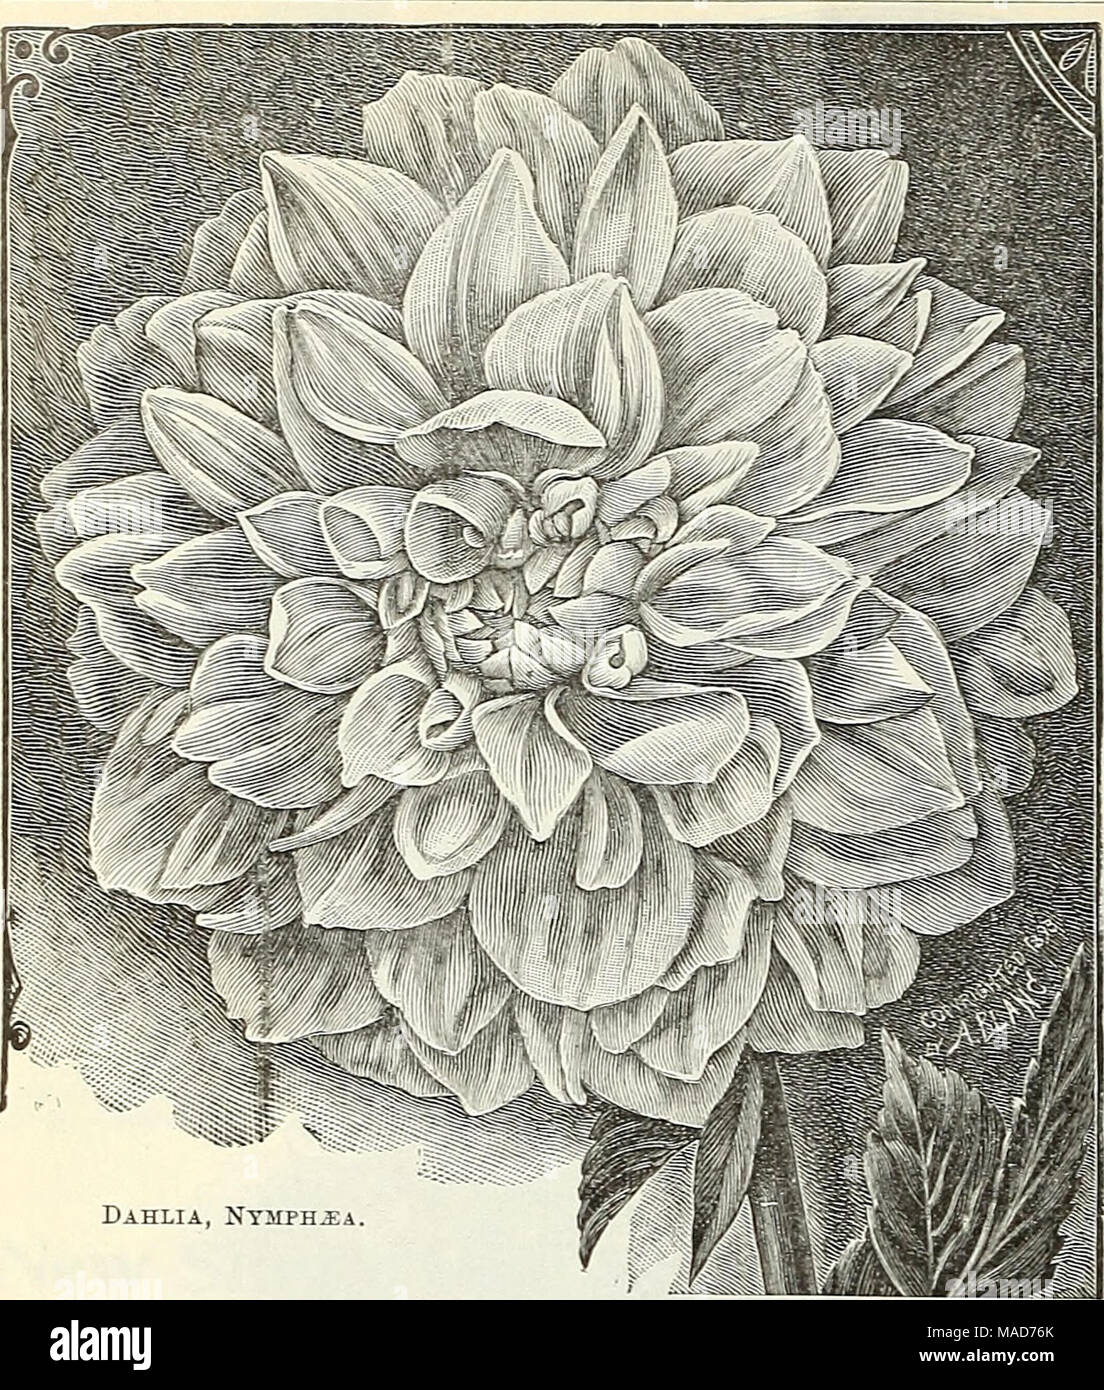 . Dreer's quarterly wholesale price list of tools, fertilizers, insecticides, sundries, etc . Dahlia, Nysiph^a Eighteen Grand Cactns Dahlias. Celestine. Yellow, suffused with orange, giving a rich golden yellow effect. Countess of Pembroke. Pure delicate rosy lavender, flowers of medium size, of perfect form and extremely profuse bloomer. Empress of India. Deep rich maroon, a fine flower. Gilt Edge. Entirely distinct from all others, each petal having a golden yellow edge with white centre. ELynerith. Brilliant vermilion, shading to a lighter shade at base of petals. Lemon Giant. Pure lemon of - Stock Image